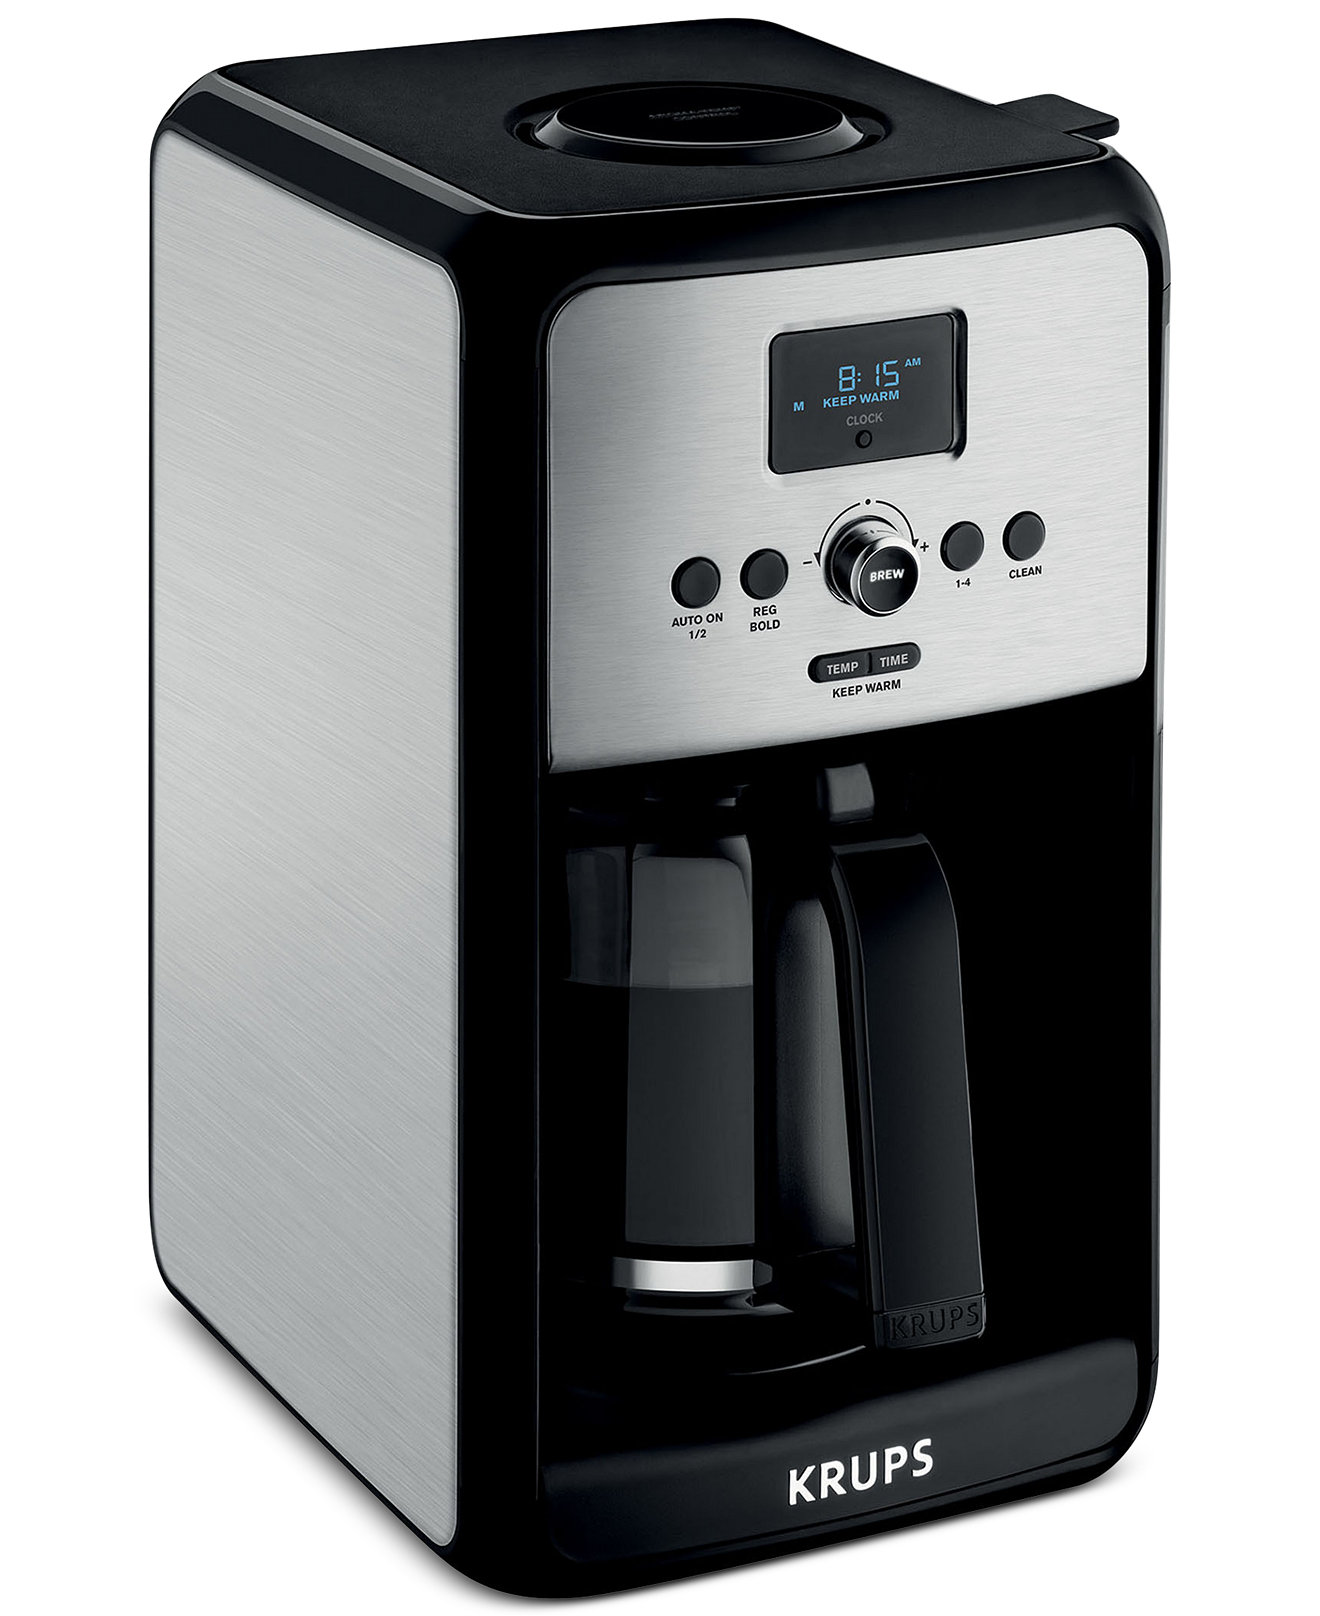 Krups Ec314050 Reviews Prices Specs Www Bestadvisor Com